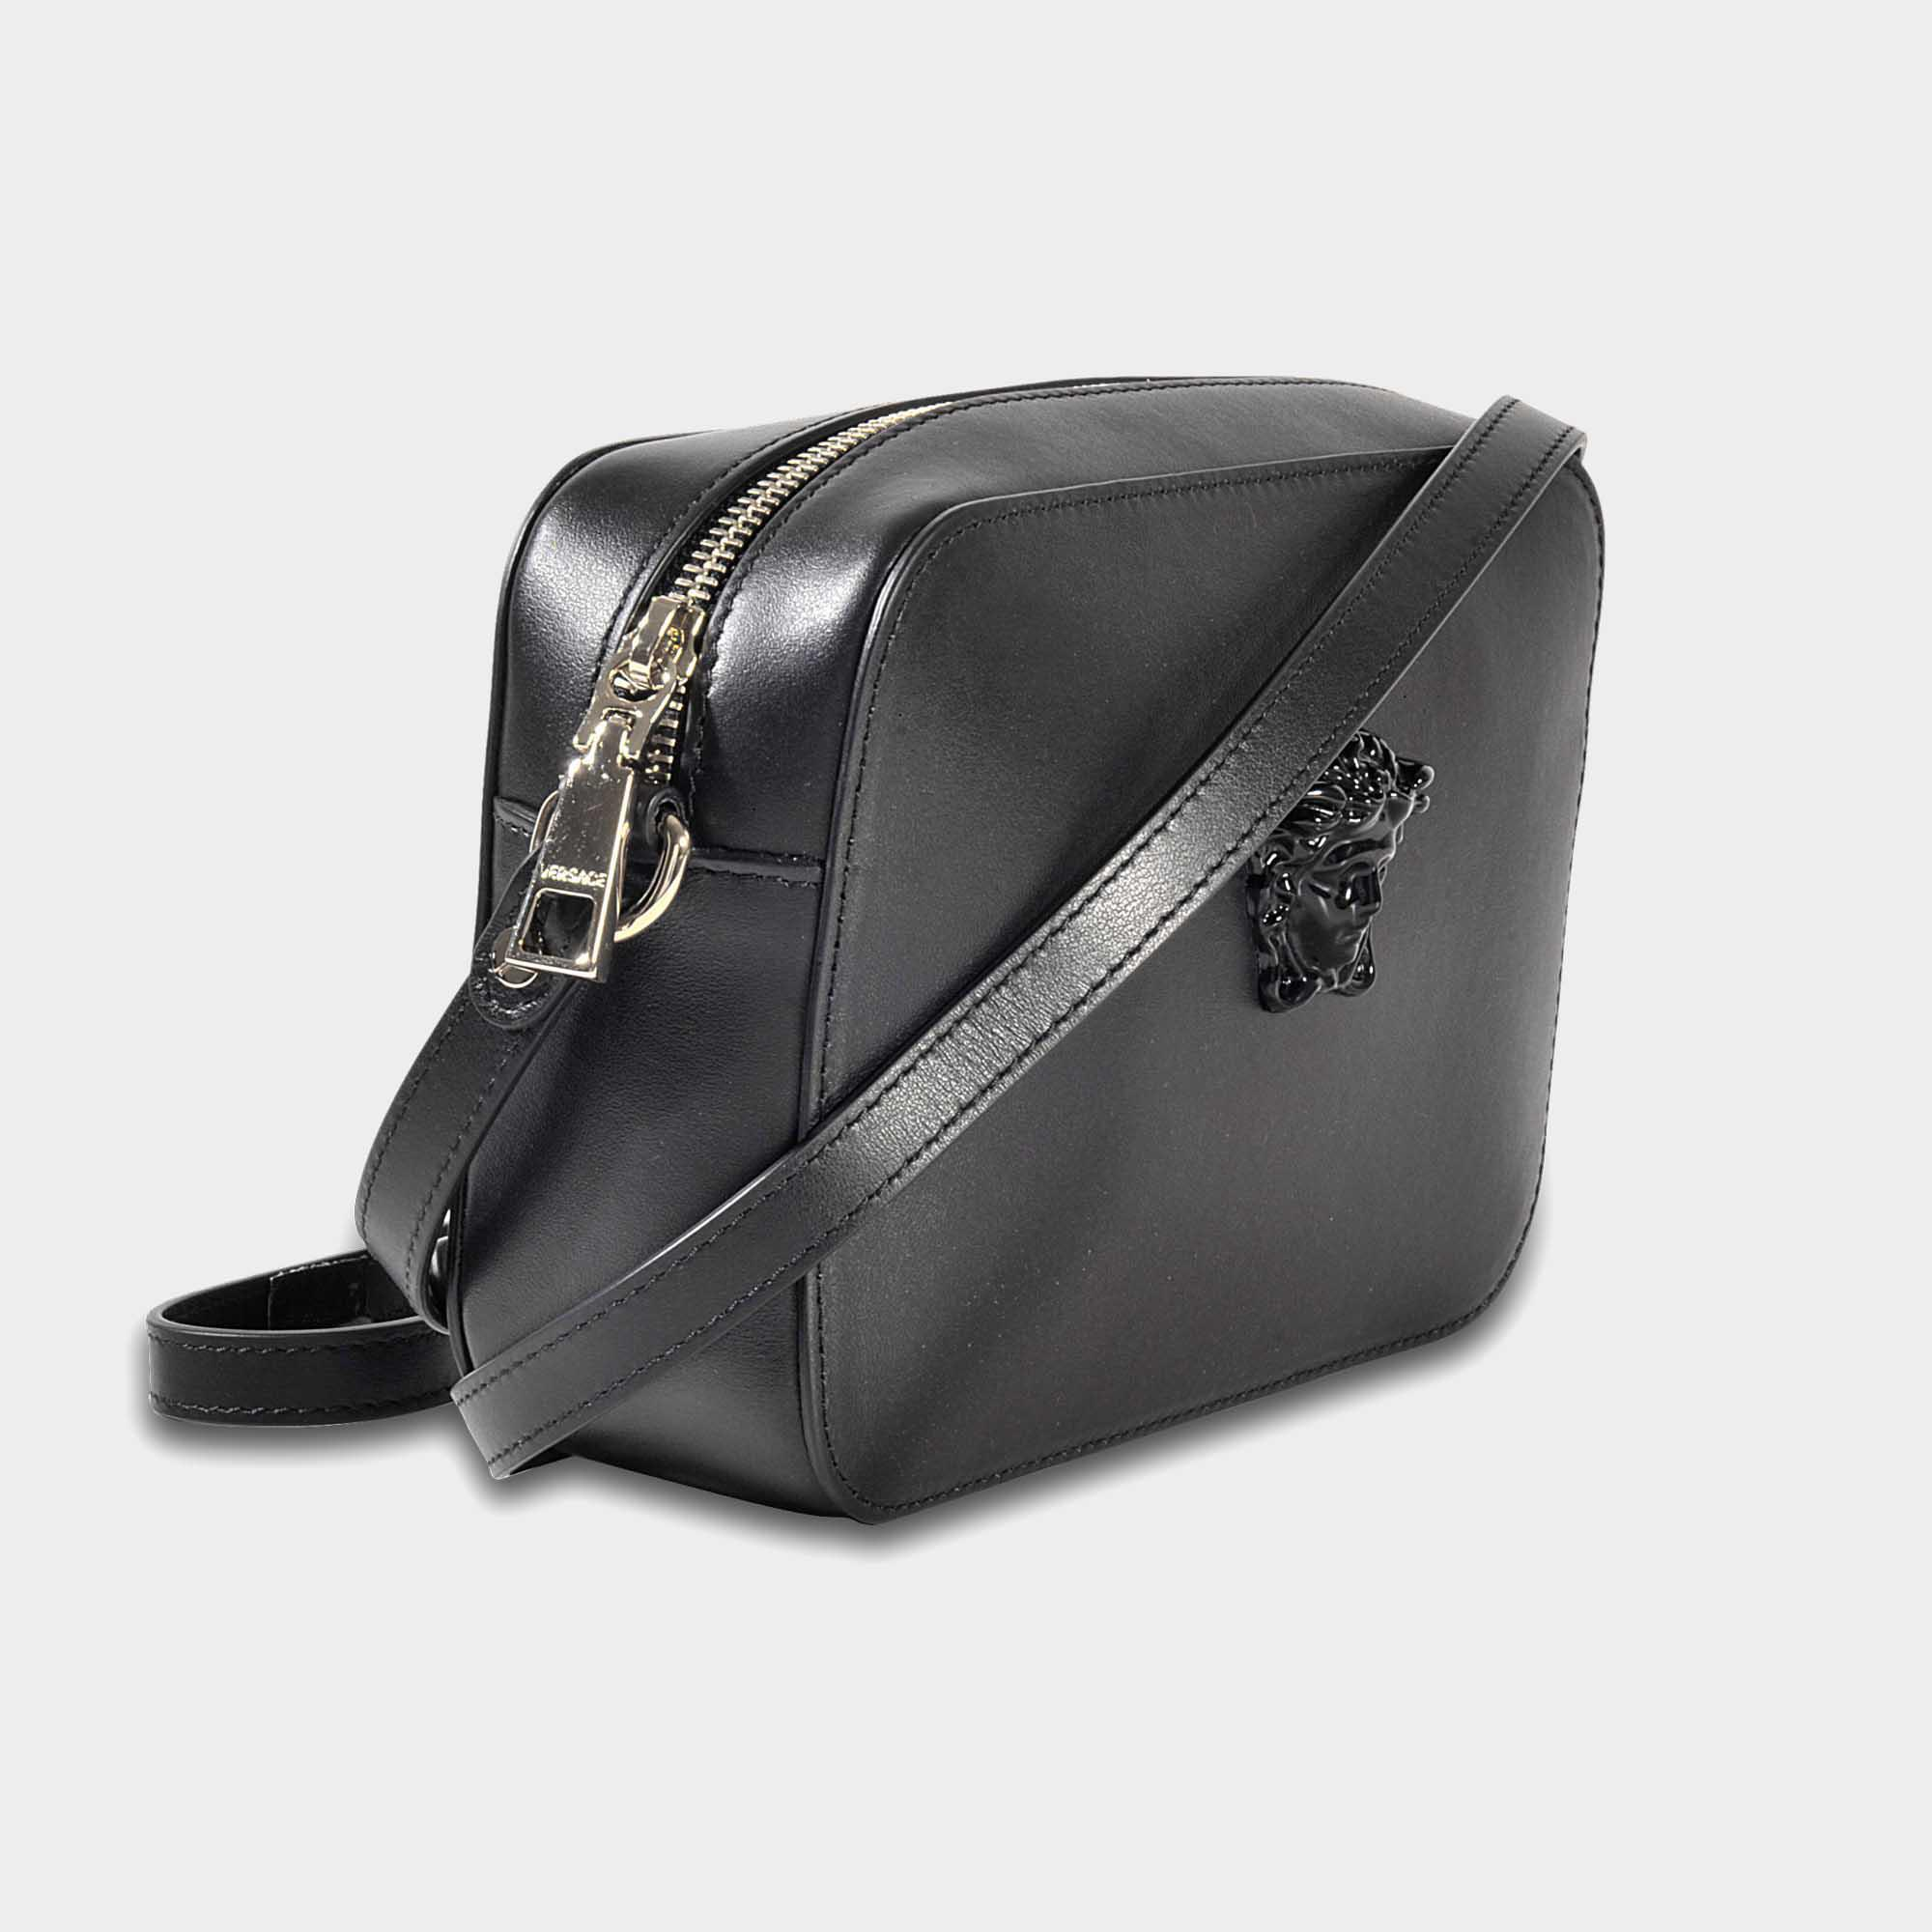 46b593ebe271 Lyst - Versace Palazzo Camera Bag in Black